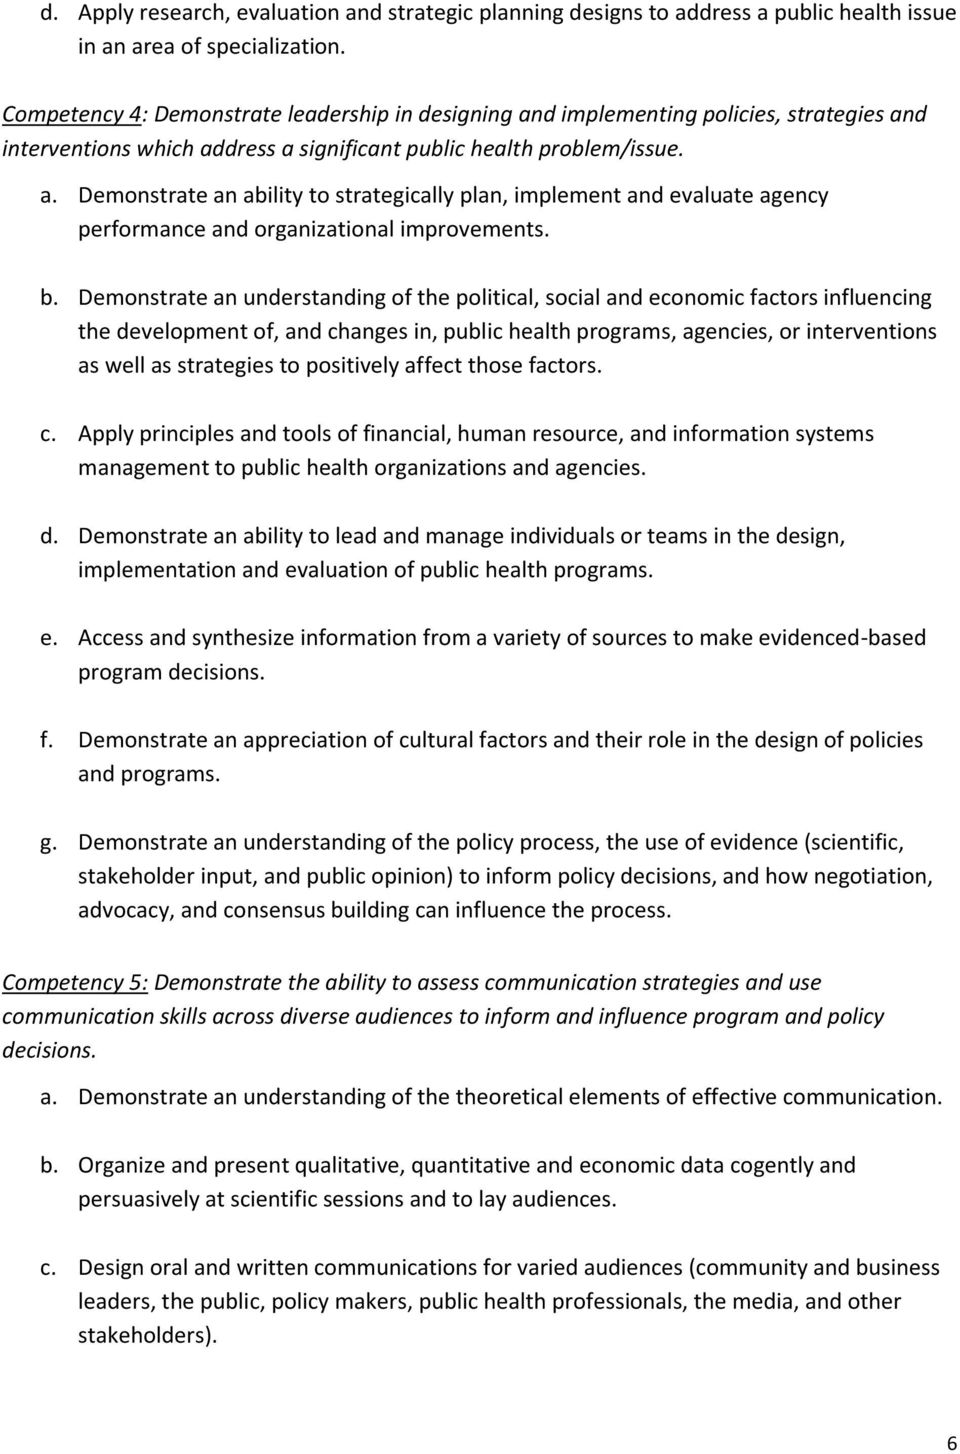 b. Demonstrate an understanding of the political, social and economic factors influencing the development of, and changes in, public health programs, agencies, or interventions as well as strategies